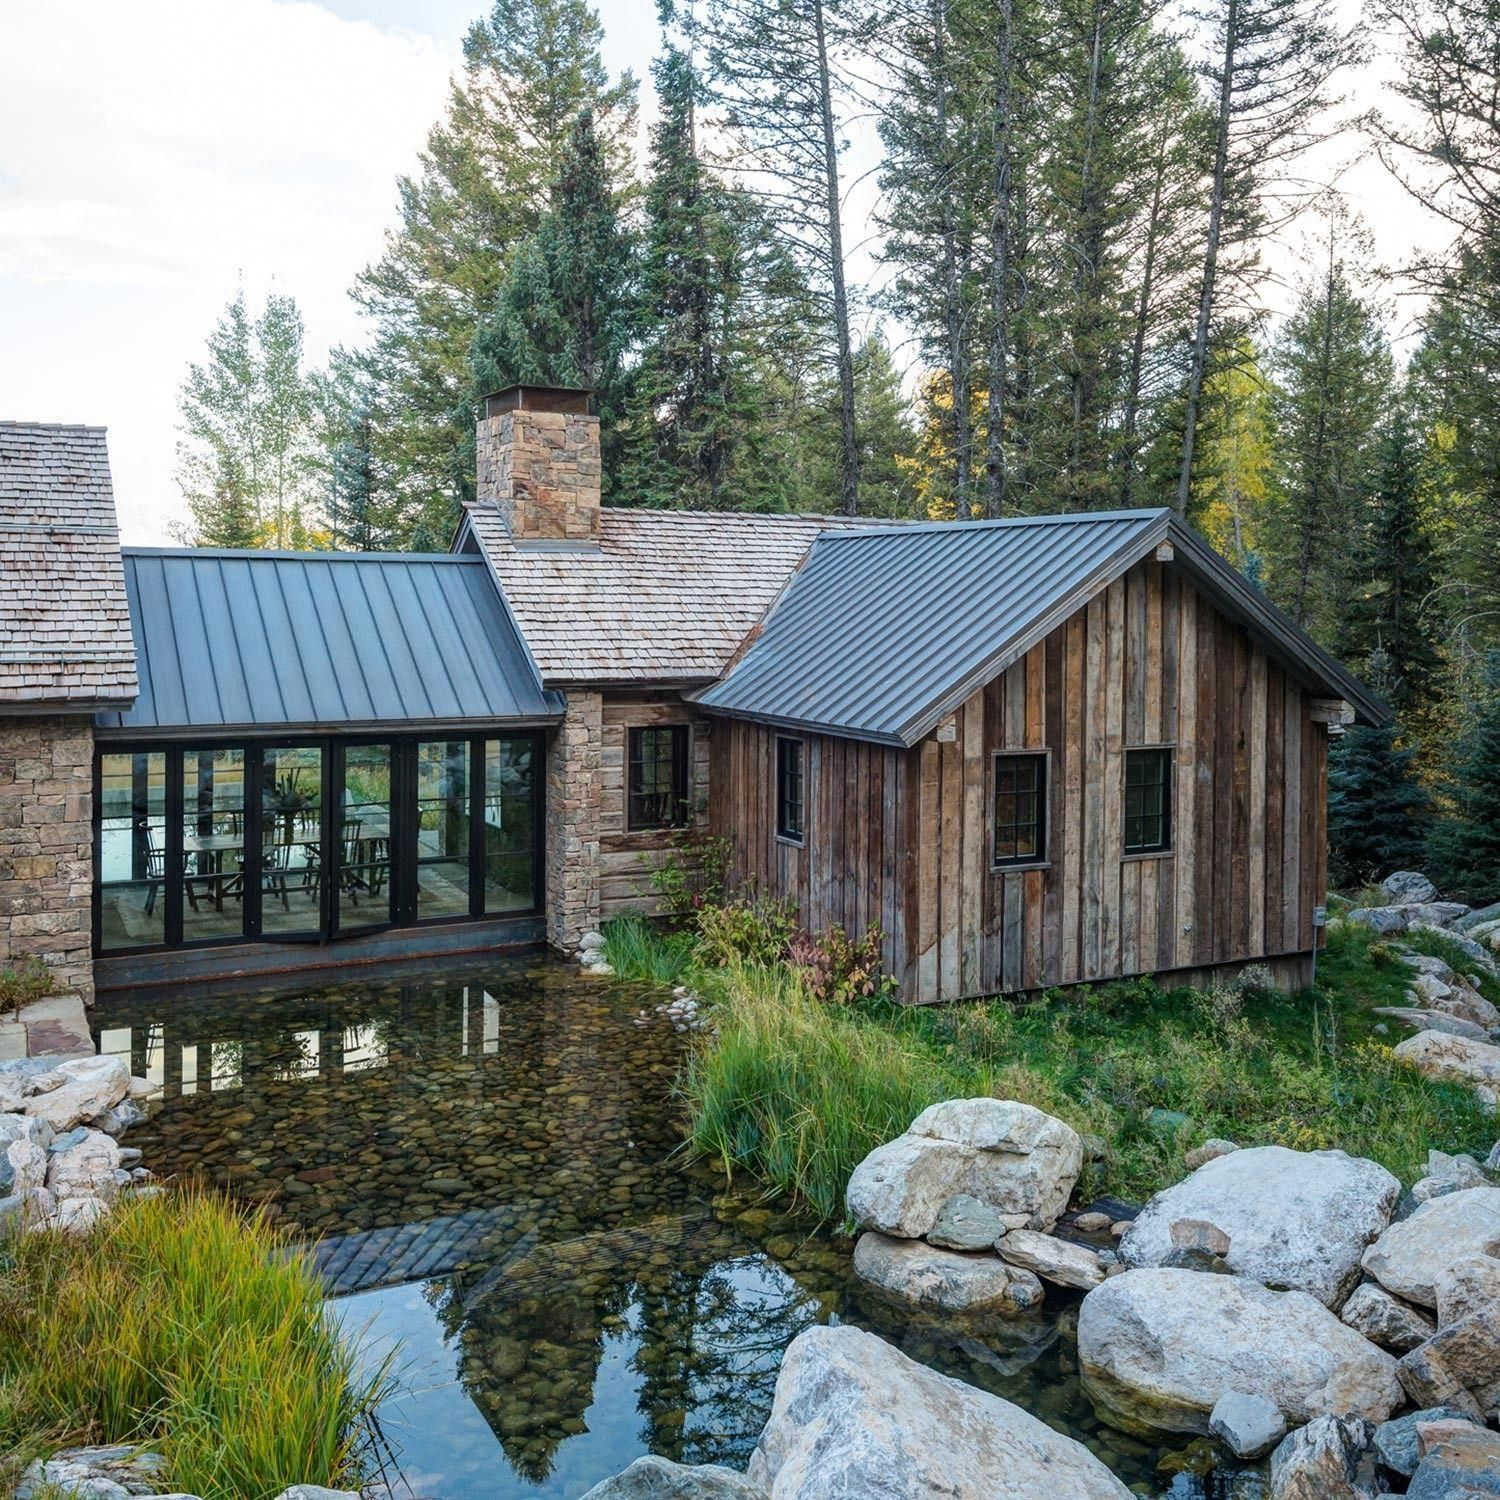 Beautiful Wood And Stone Building With Grassy Area And River Looks Like There S A Table Area In The Glass Corridor Ov House Exterior Architecture House Design